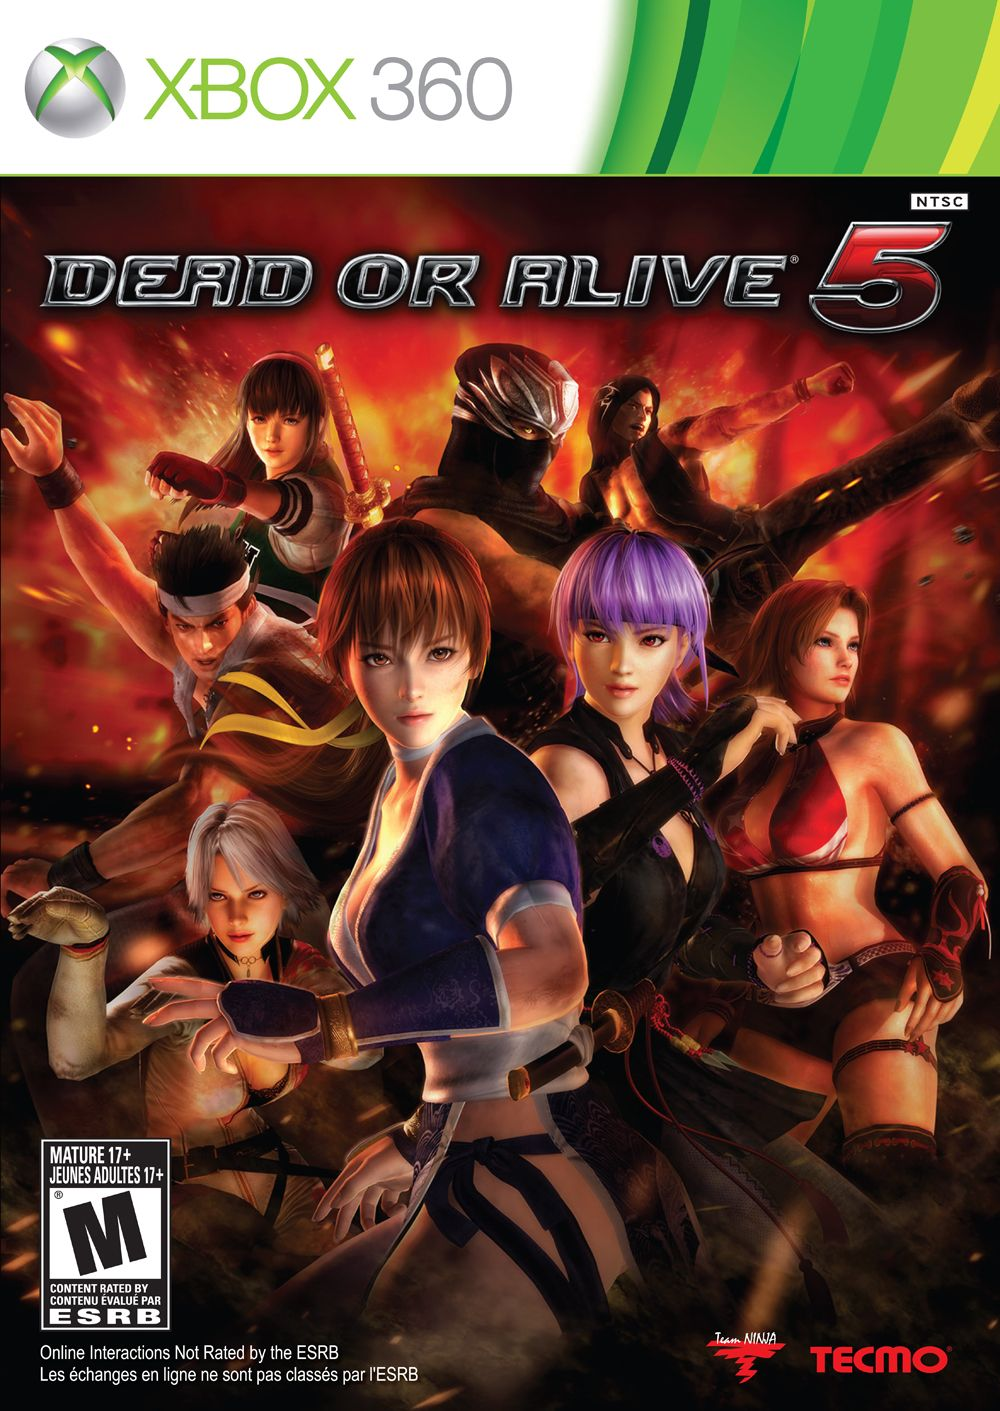 Dead Or Alive 5 Xbox 360 Dead Or Alive 5 Game Download Free